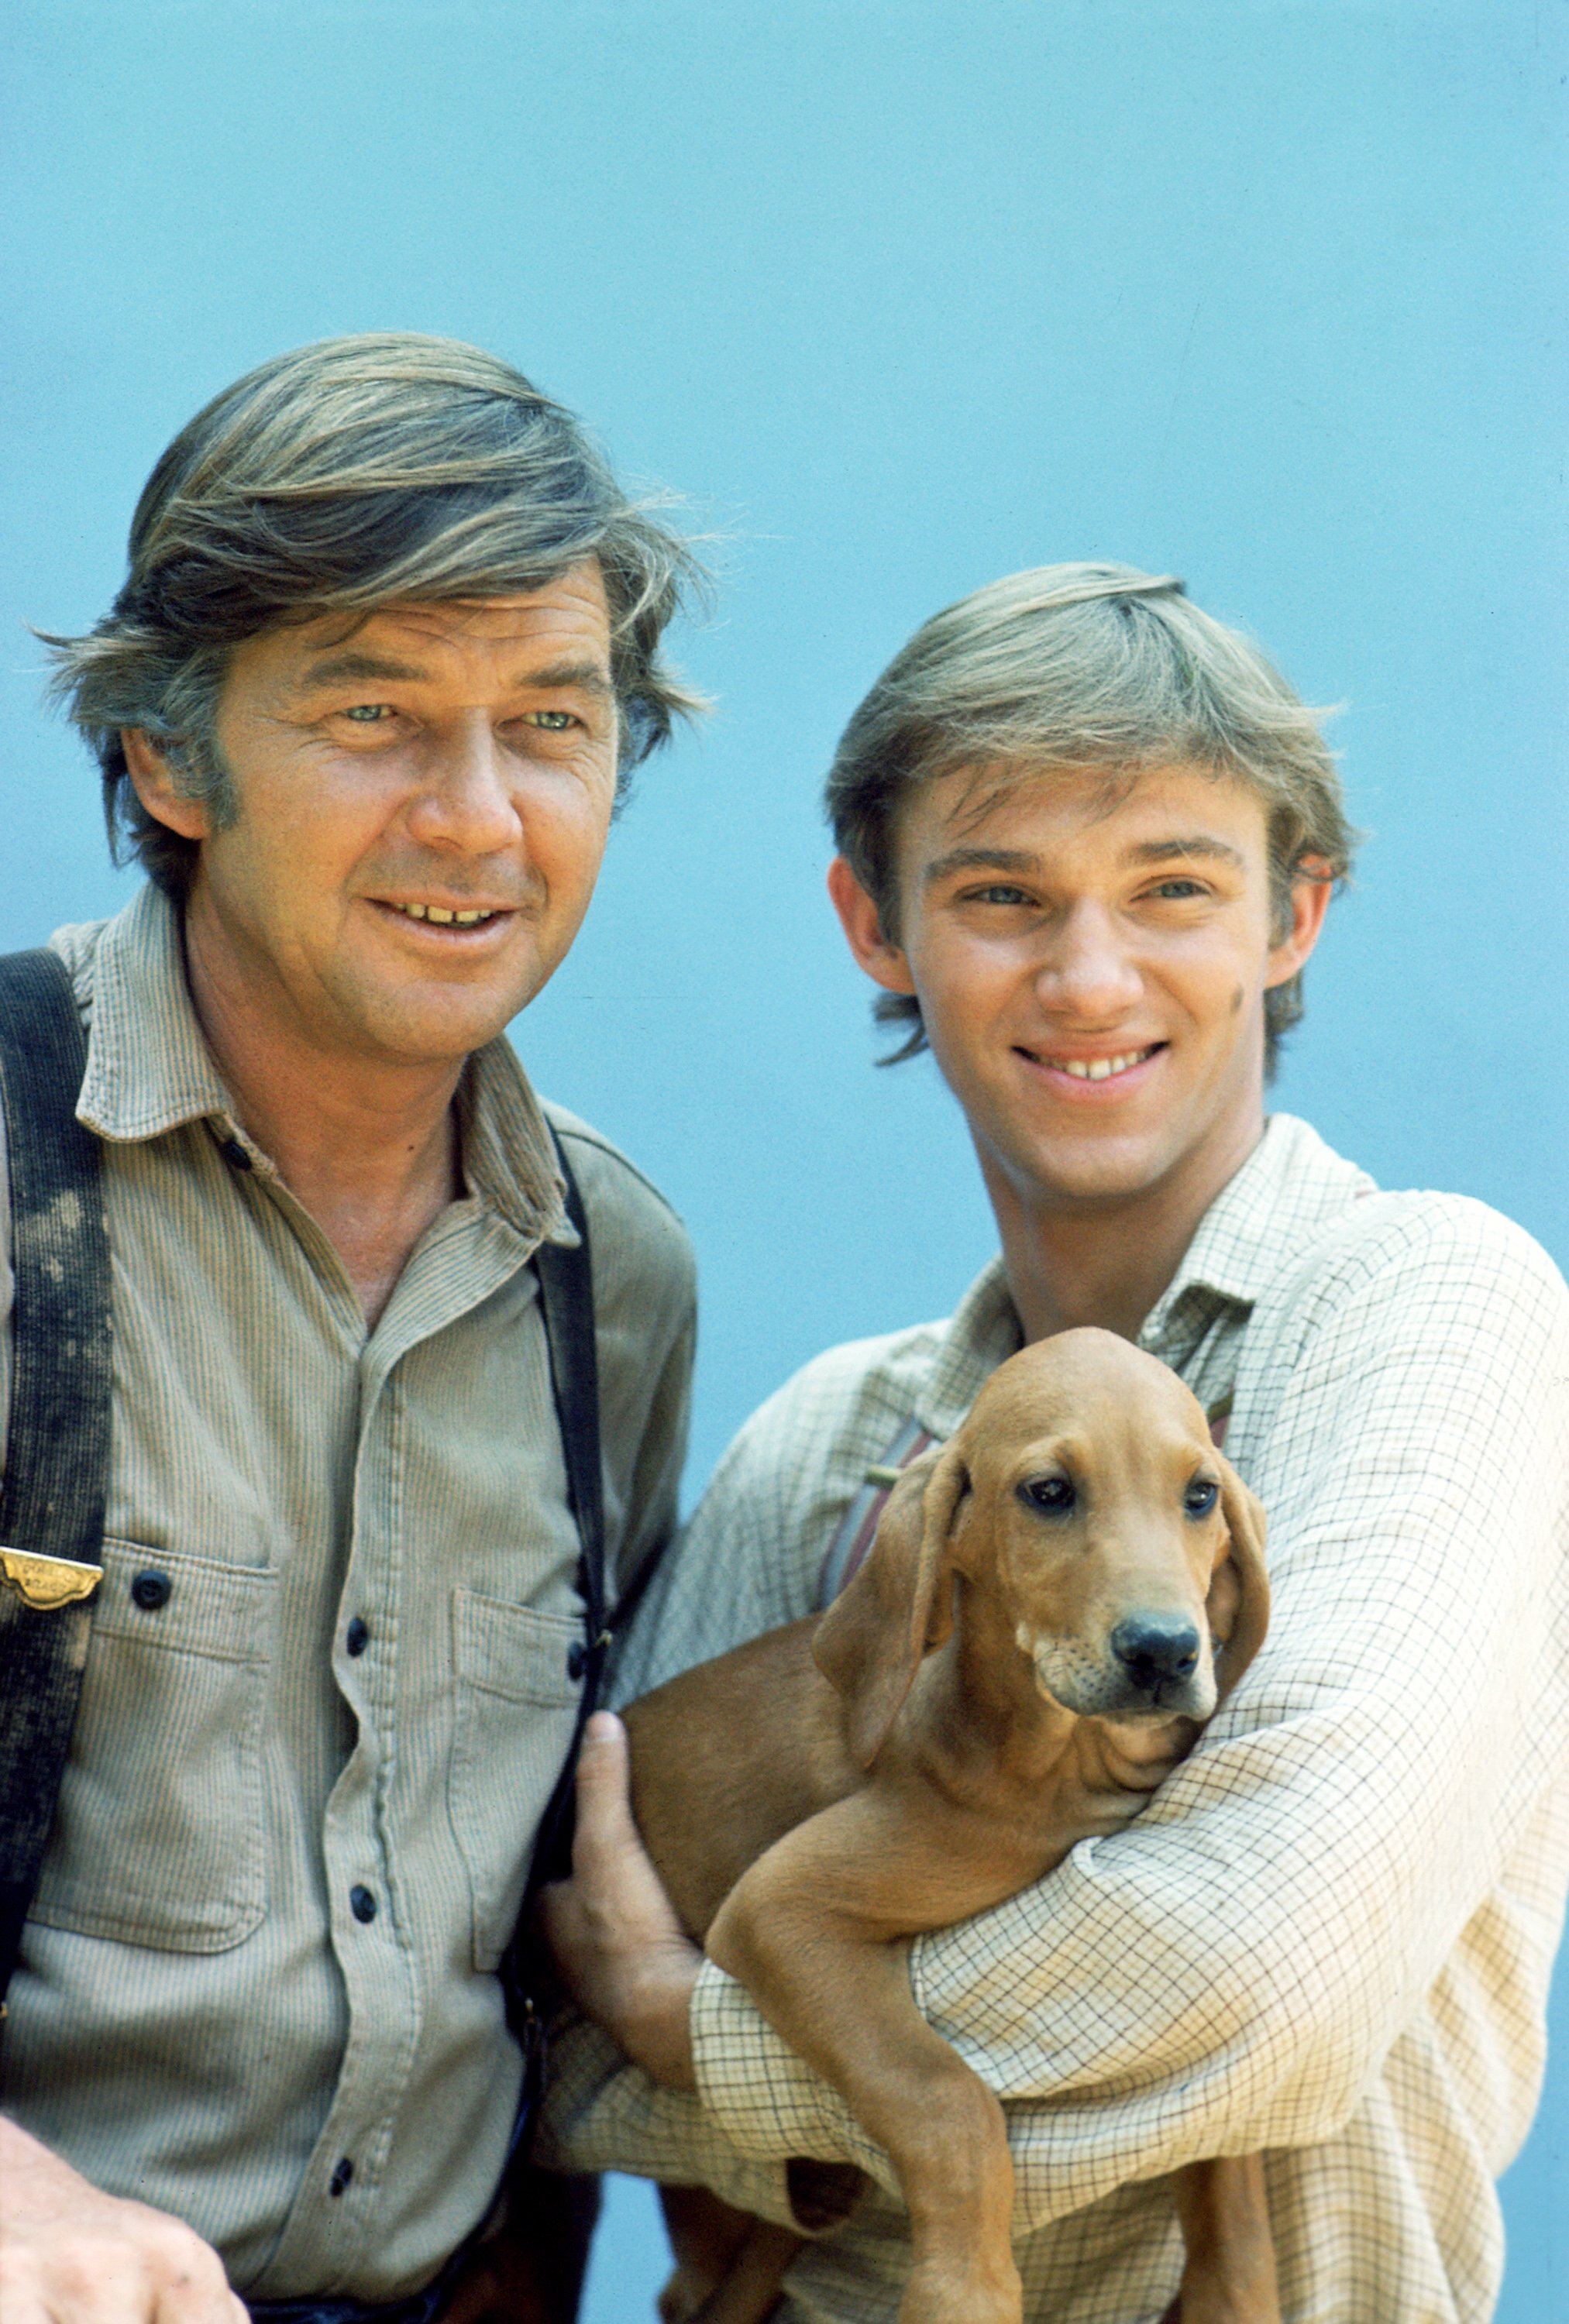 Image Credits: Getty Images / CBS | From left to right, Ralph Waite (as John Walton) and Richard Thomas (as John Boy Walton), in THE WALTONS. 1974.